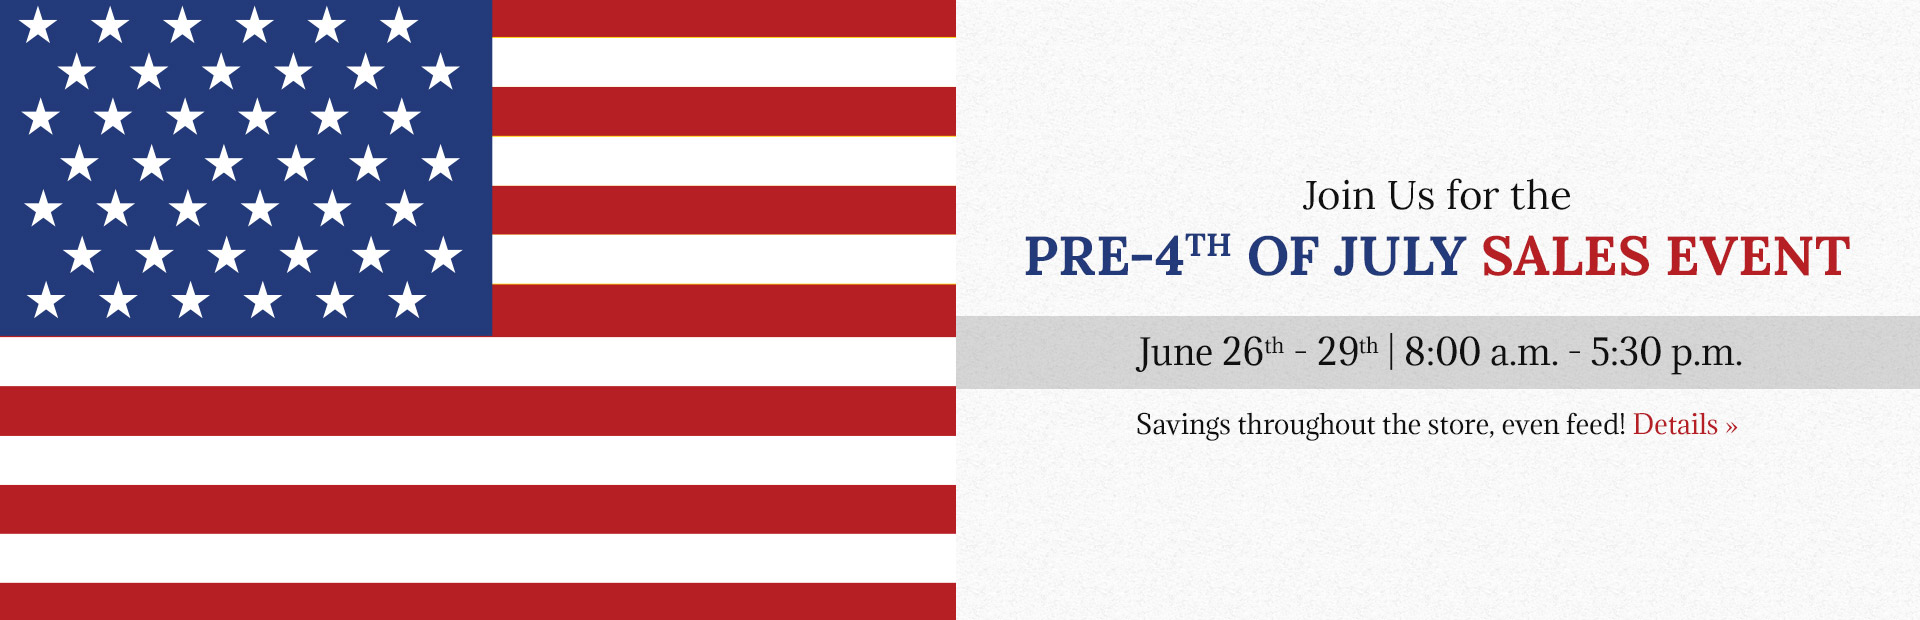 Join us June 26th - 29th for the Pre-4th of July Sales Event!